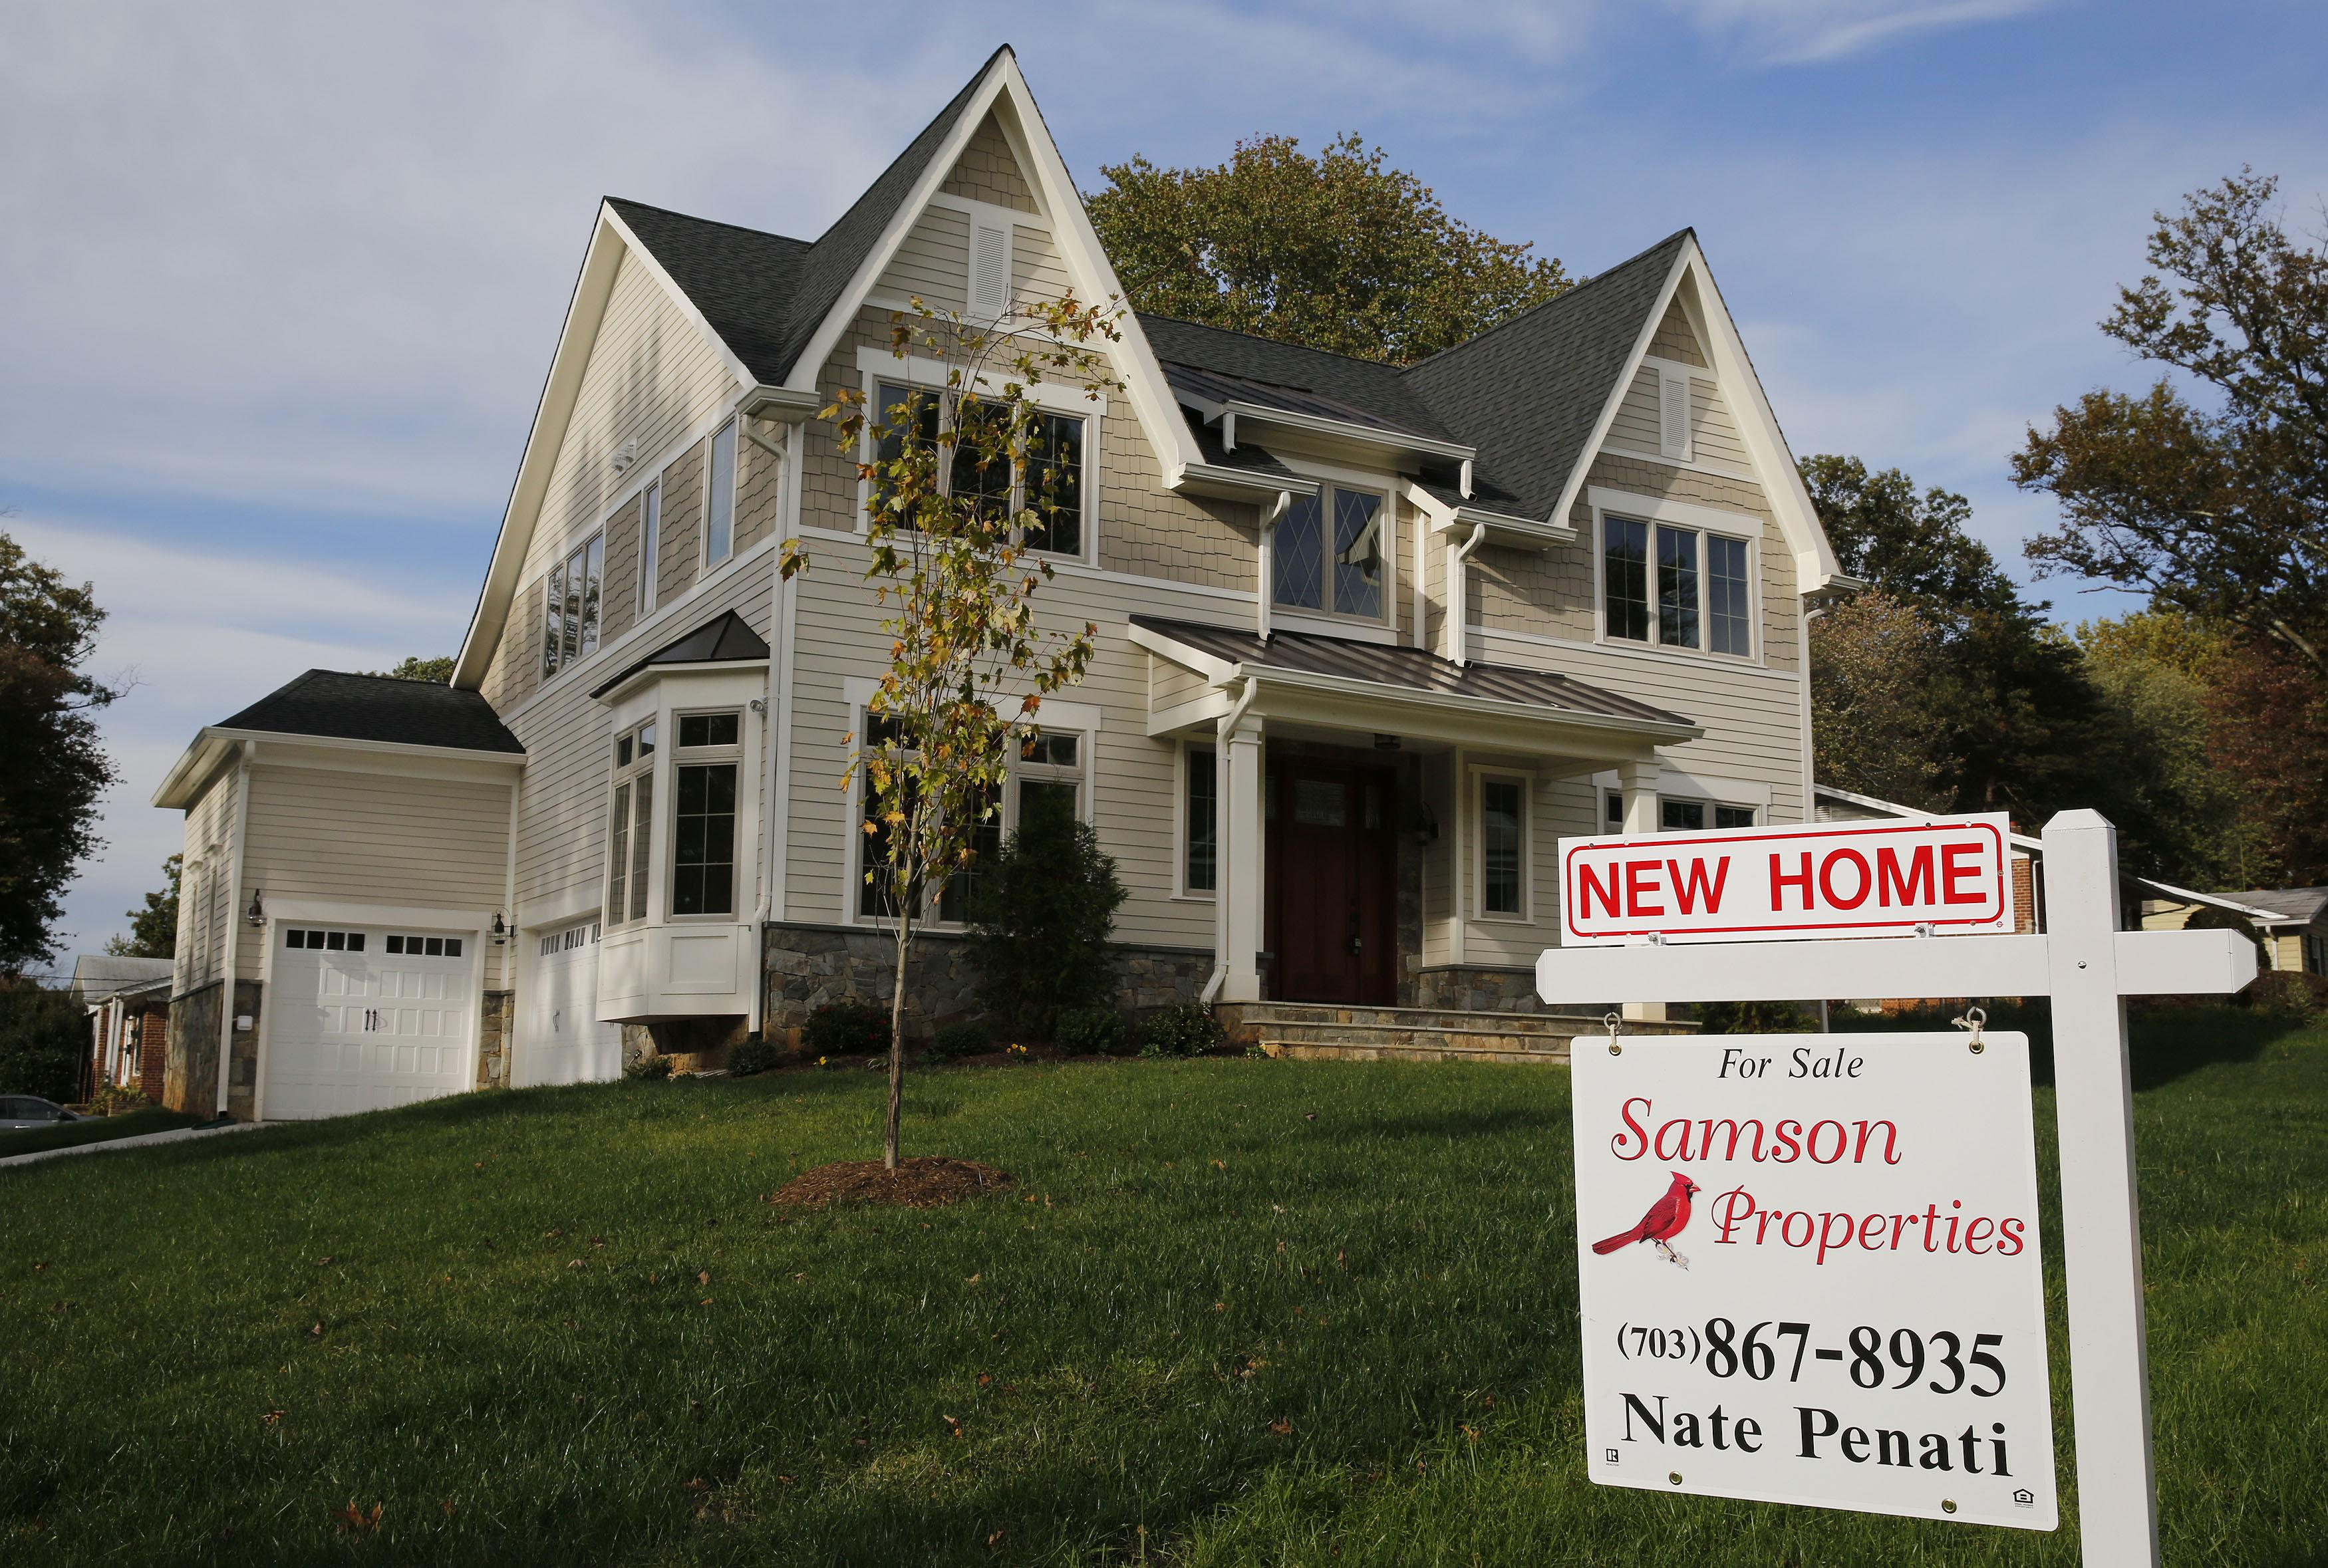 First-time U.S. home buyers face supply struggle as rates fall